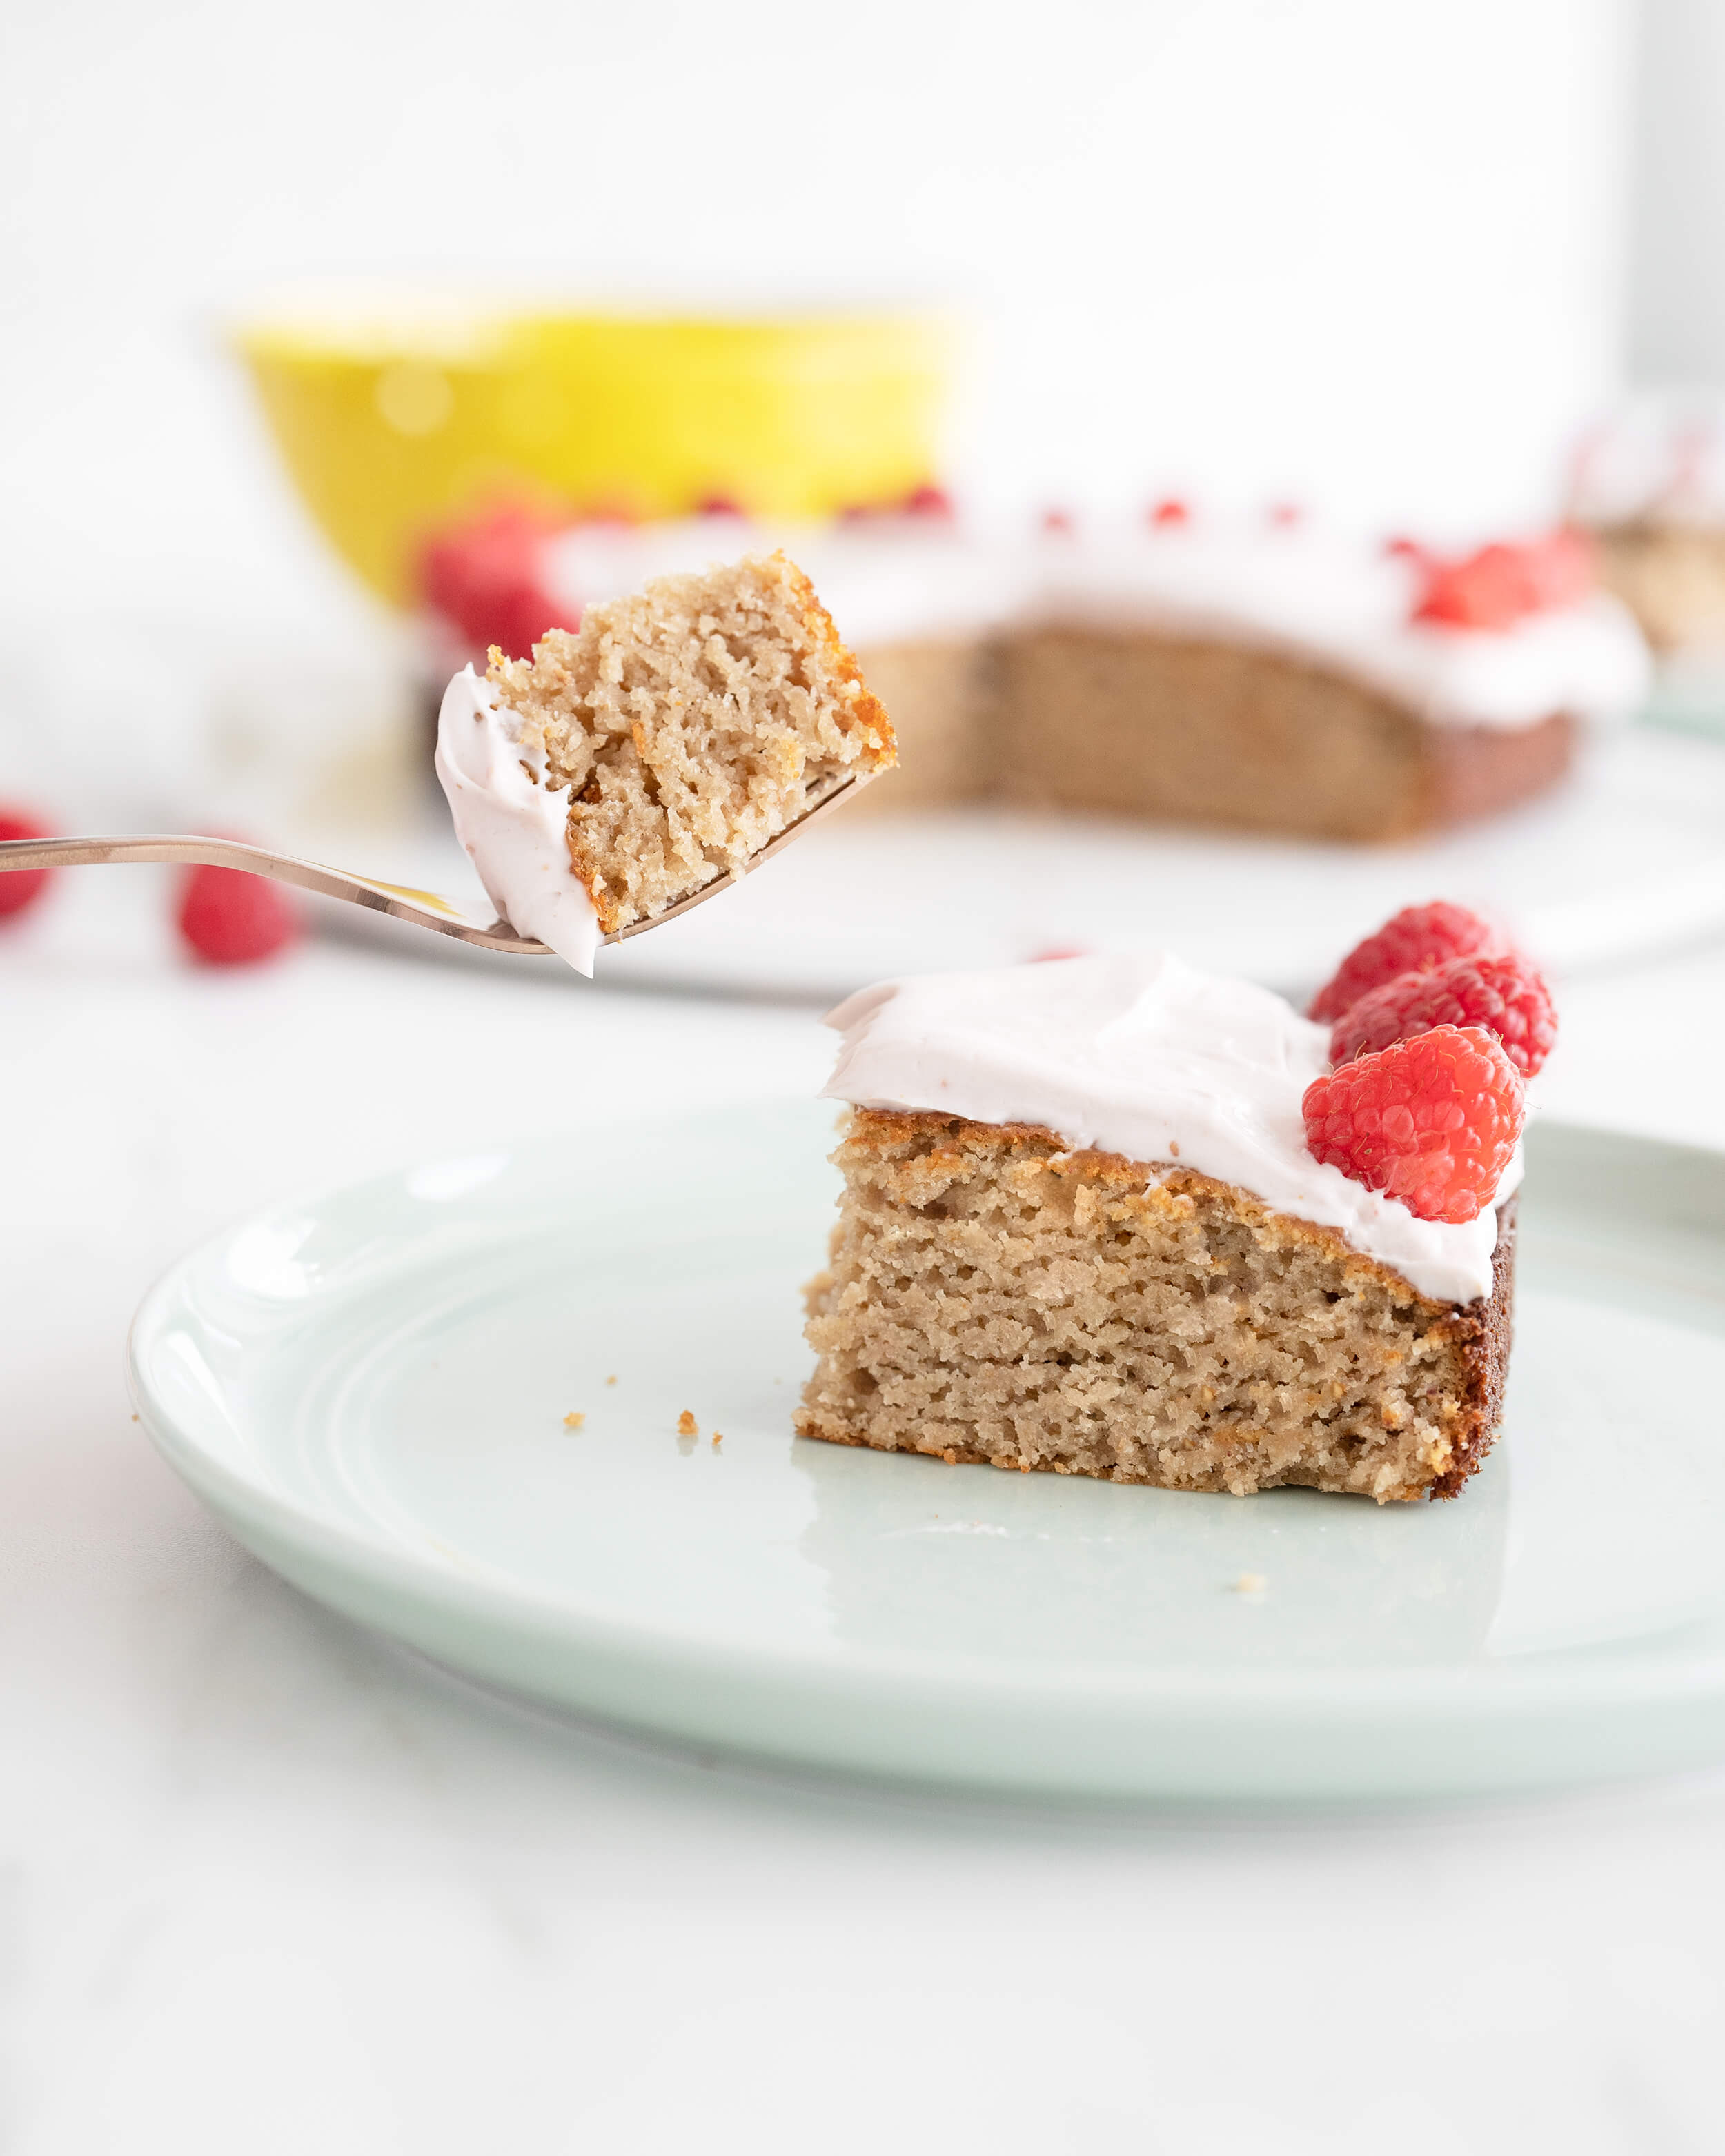 slice of almond flour cake